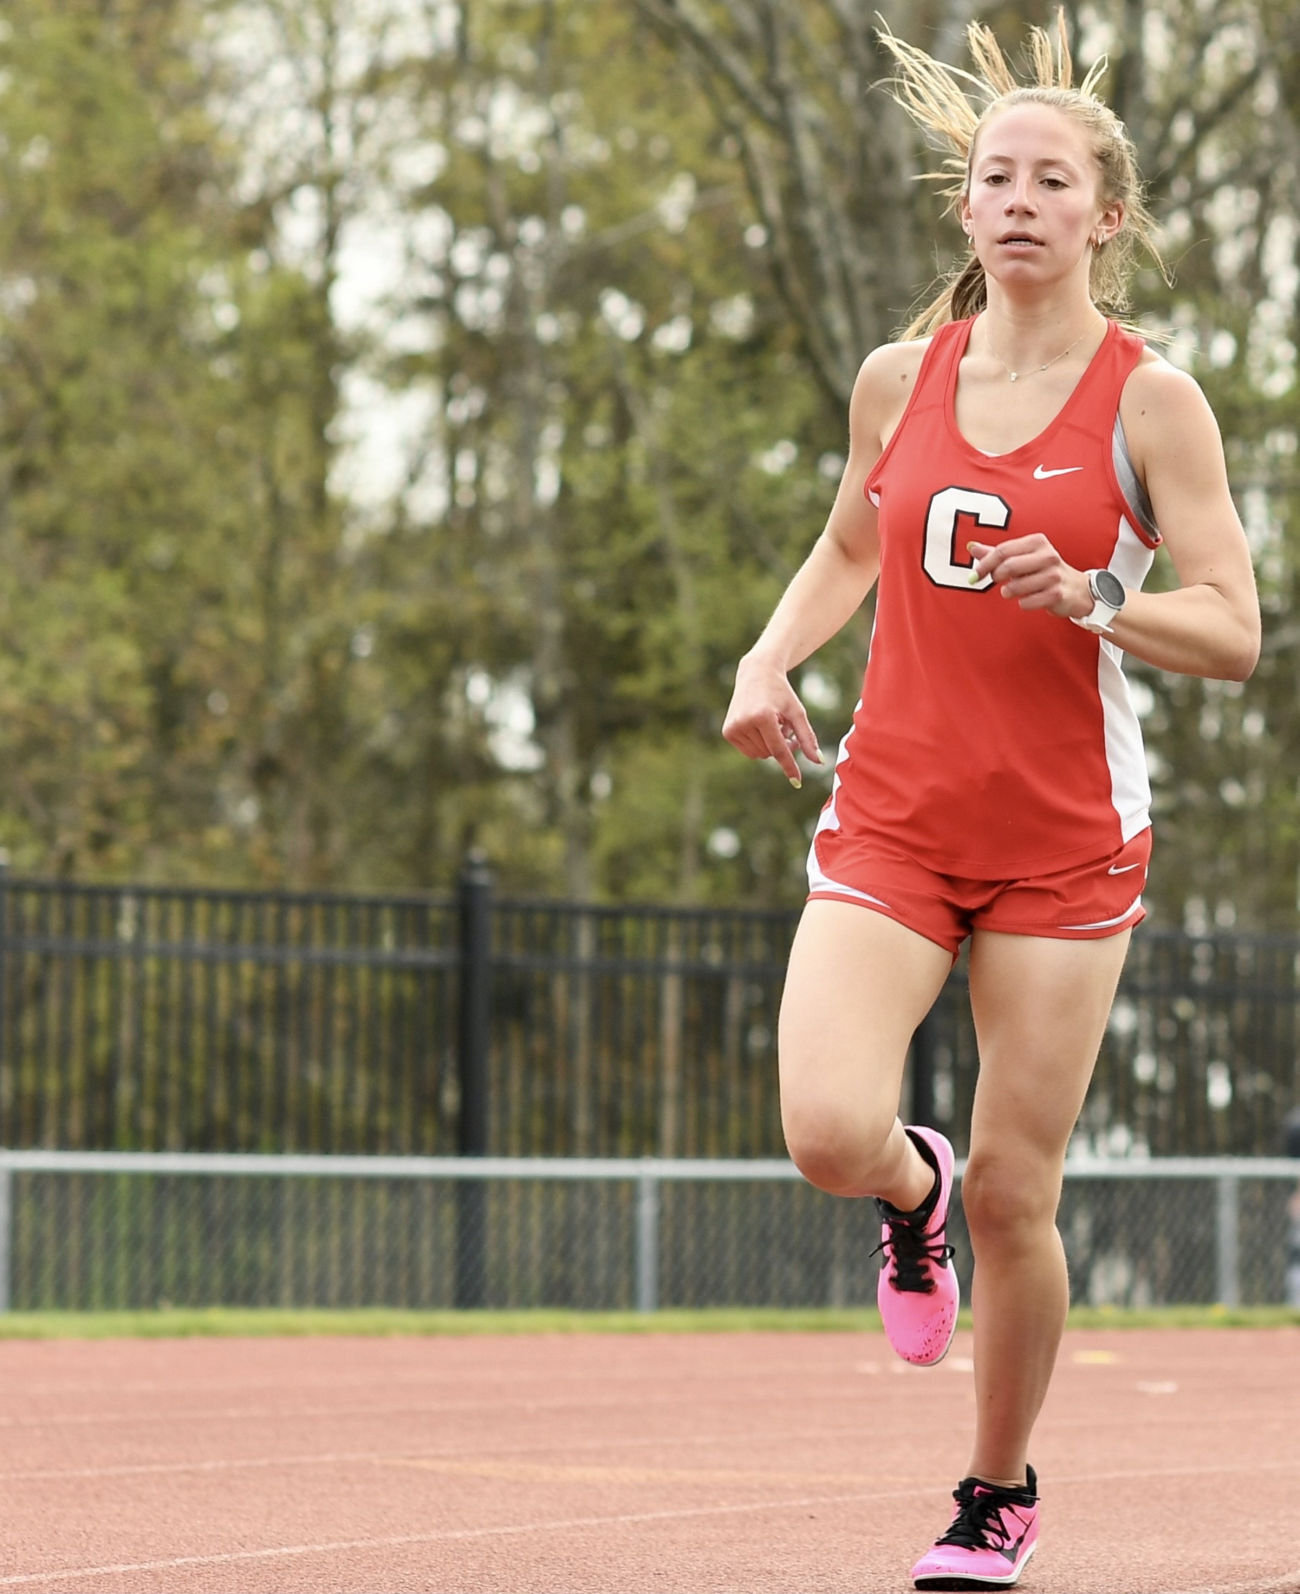 DeMarzo leads Crestwood teammates to states